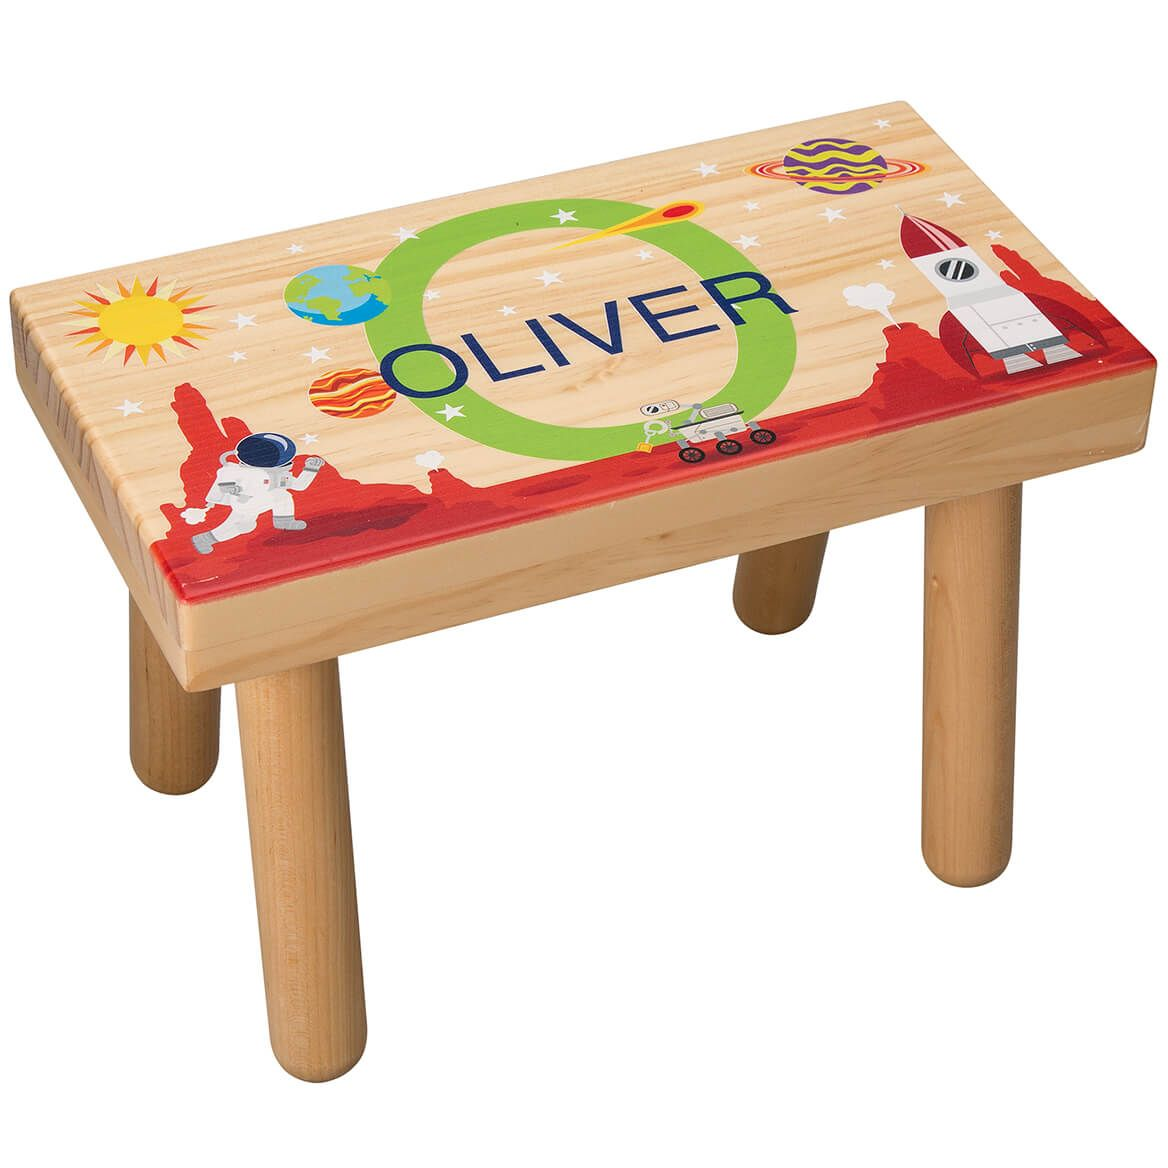 Personalized Space-Themed Children's Step Stool-368056